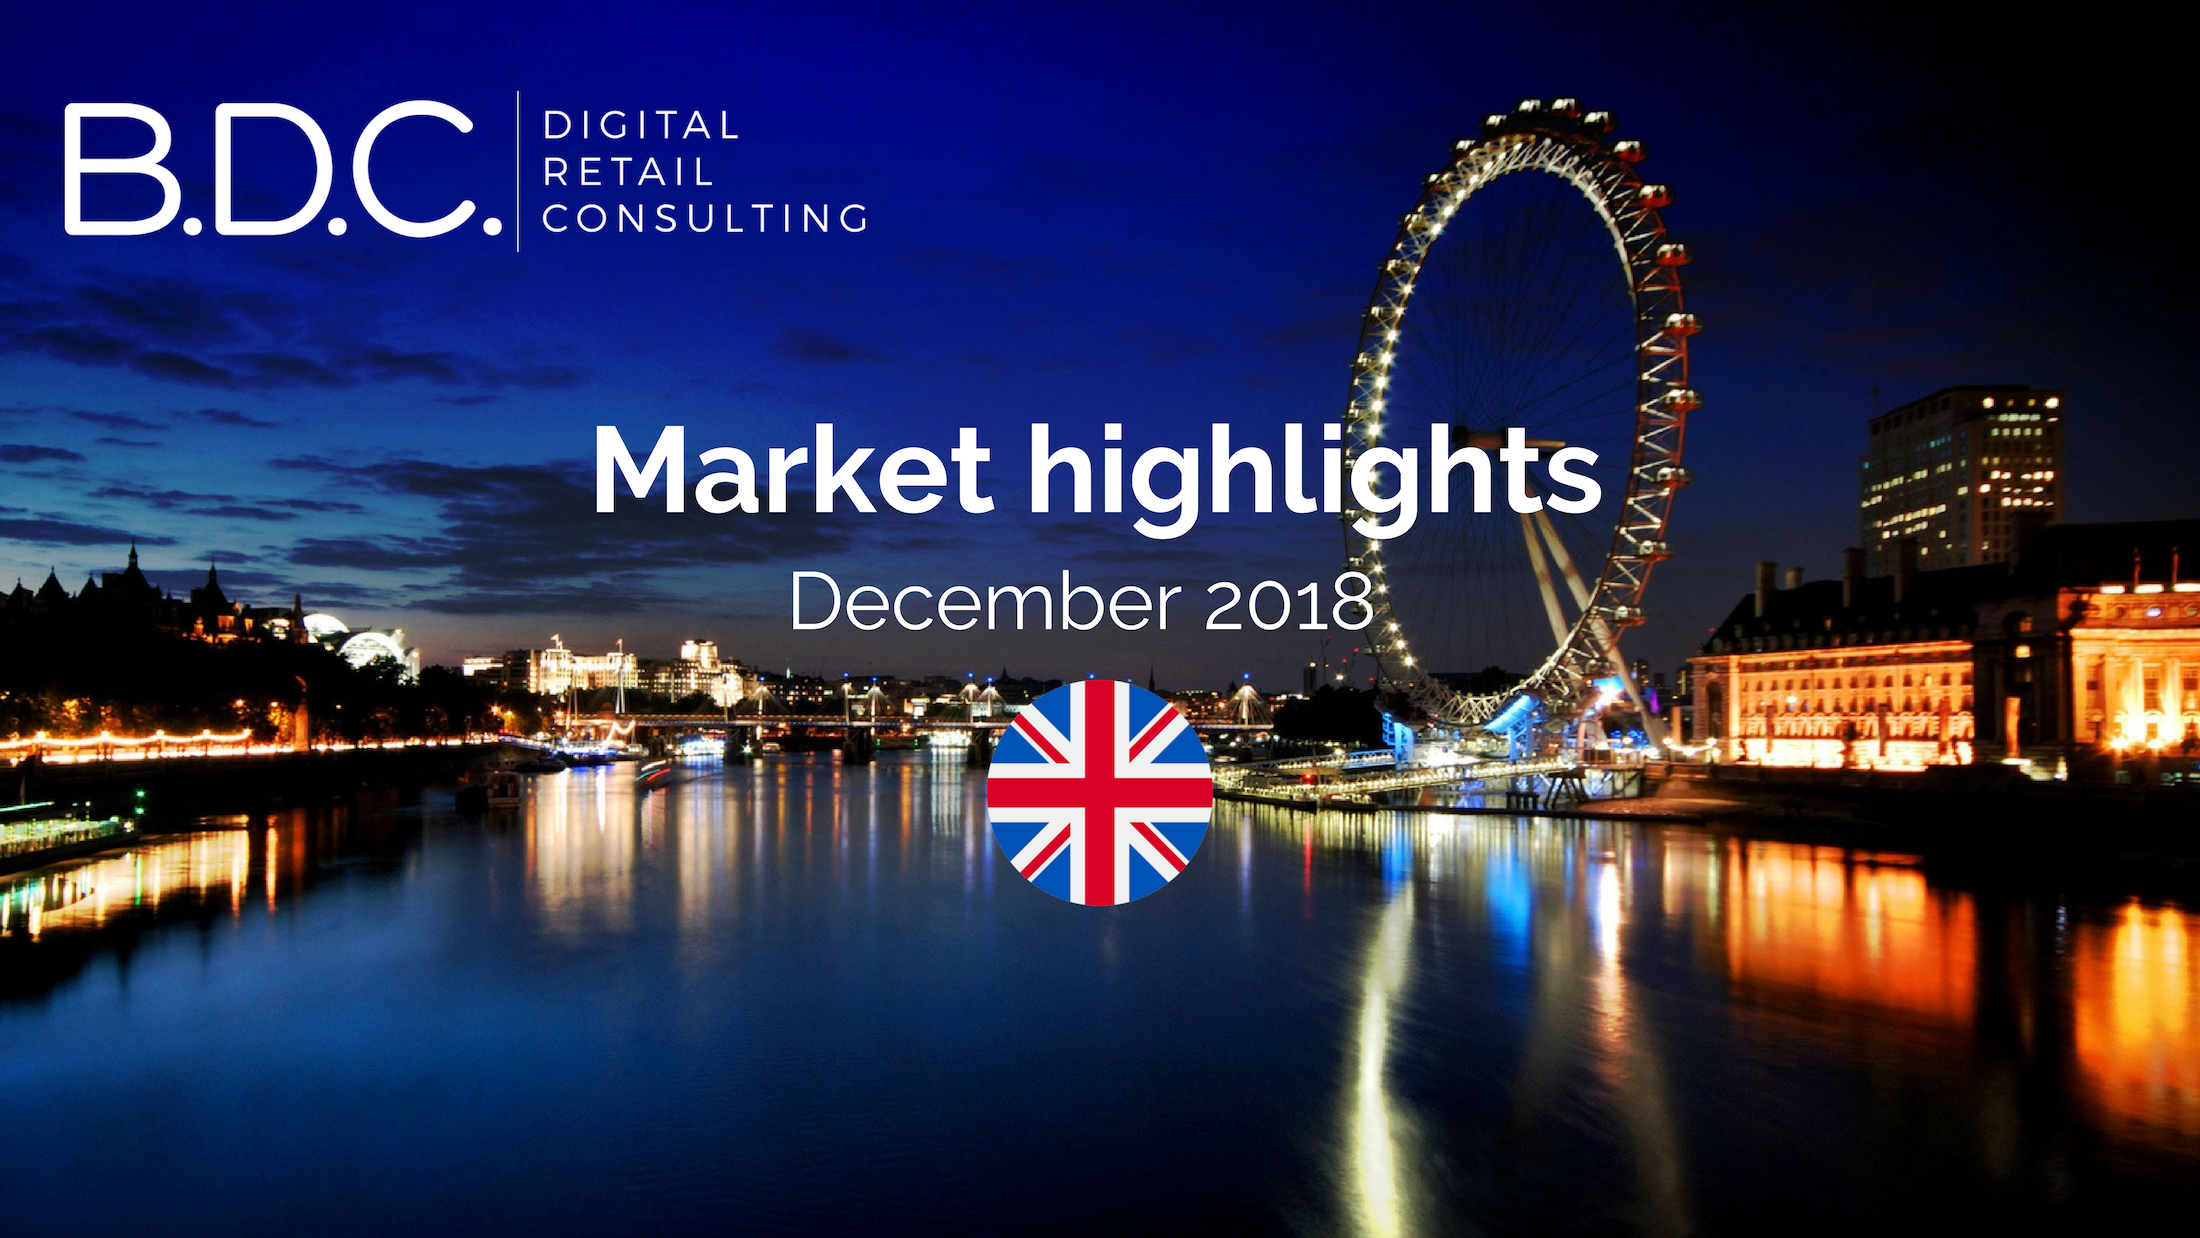 Copie de Trends News suite - UK MARKET HIGHLIGHTS – DECEMBER 2018